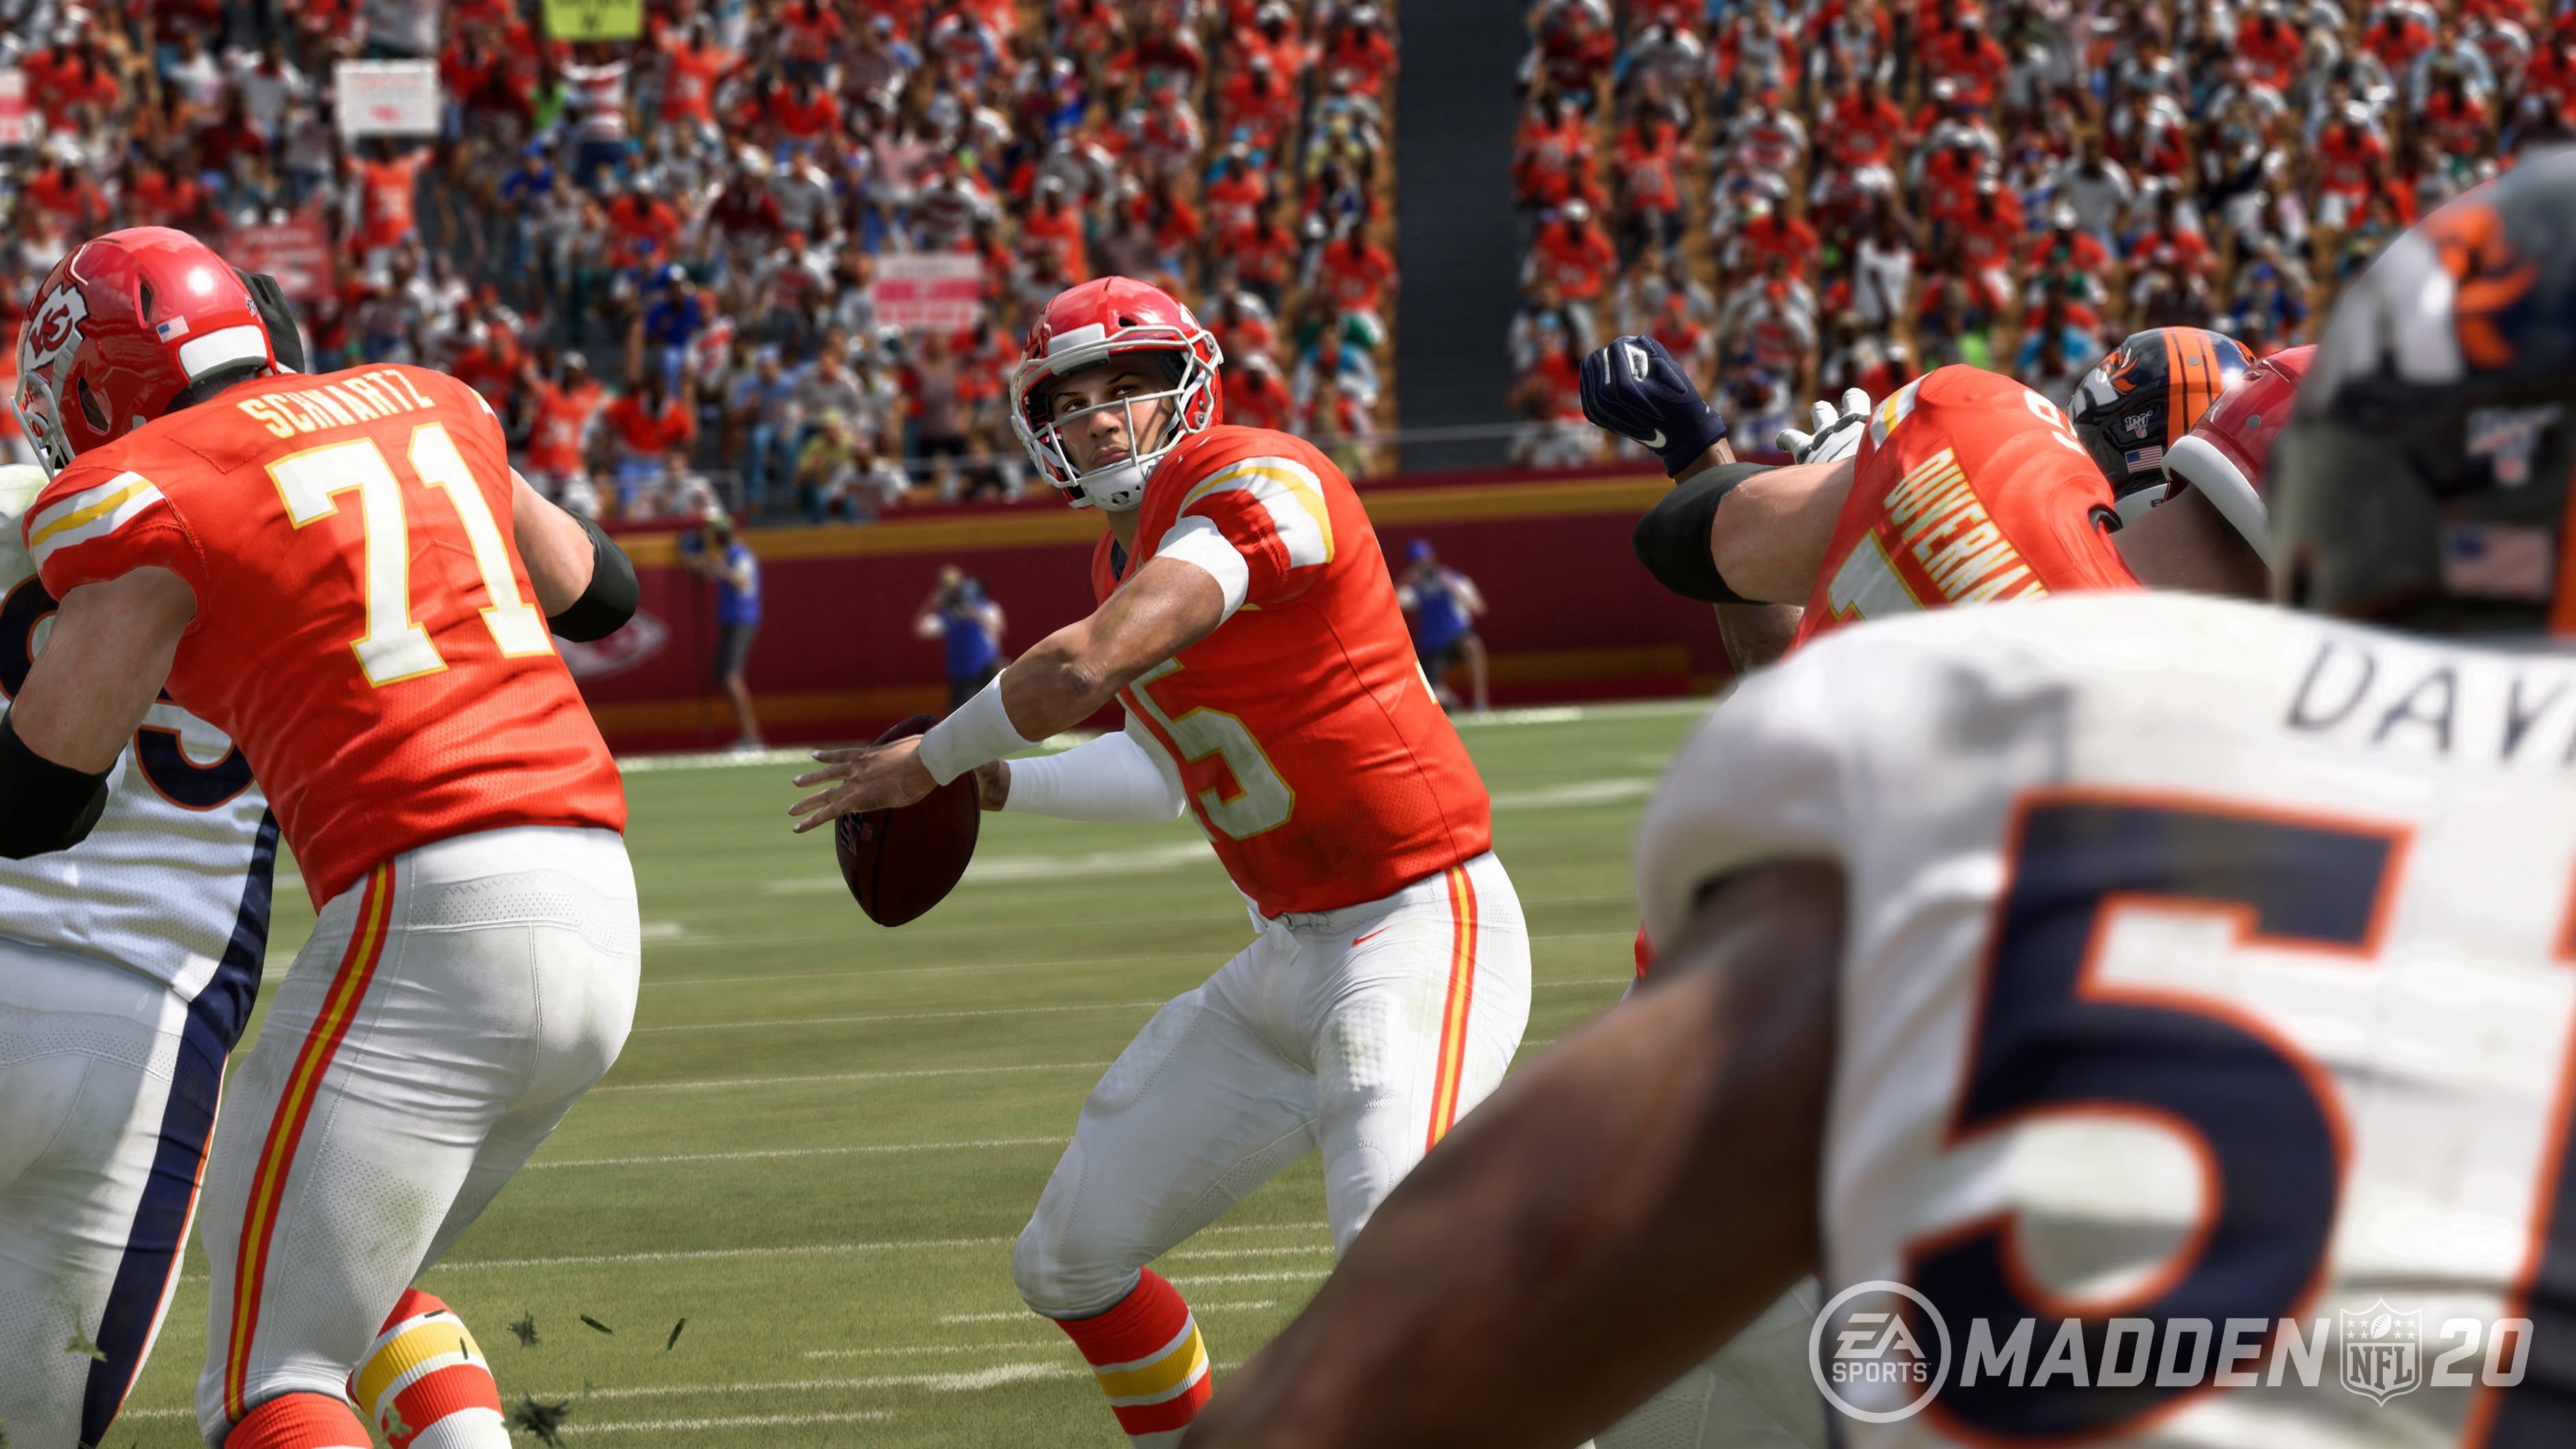 'Madden NFL' cover athlete Patrick Mahomes wants to mark in game with no-look passes